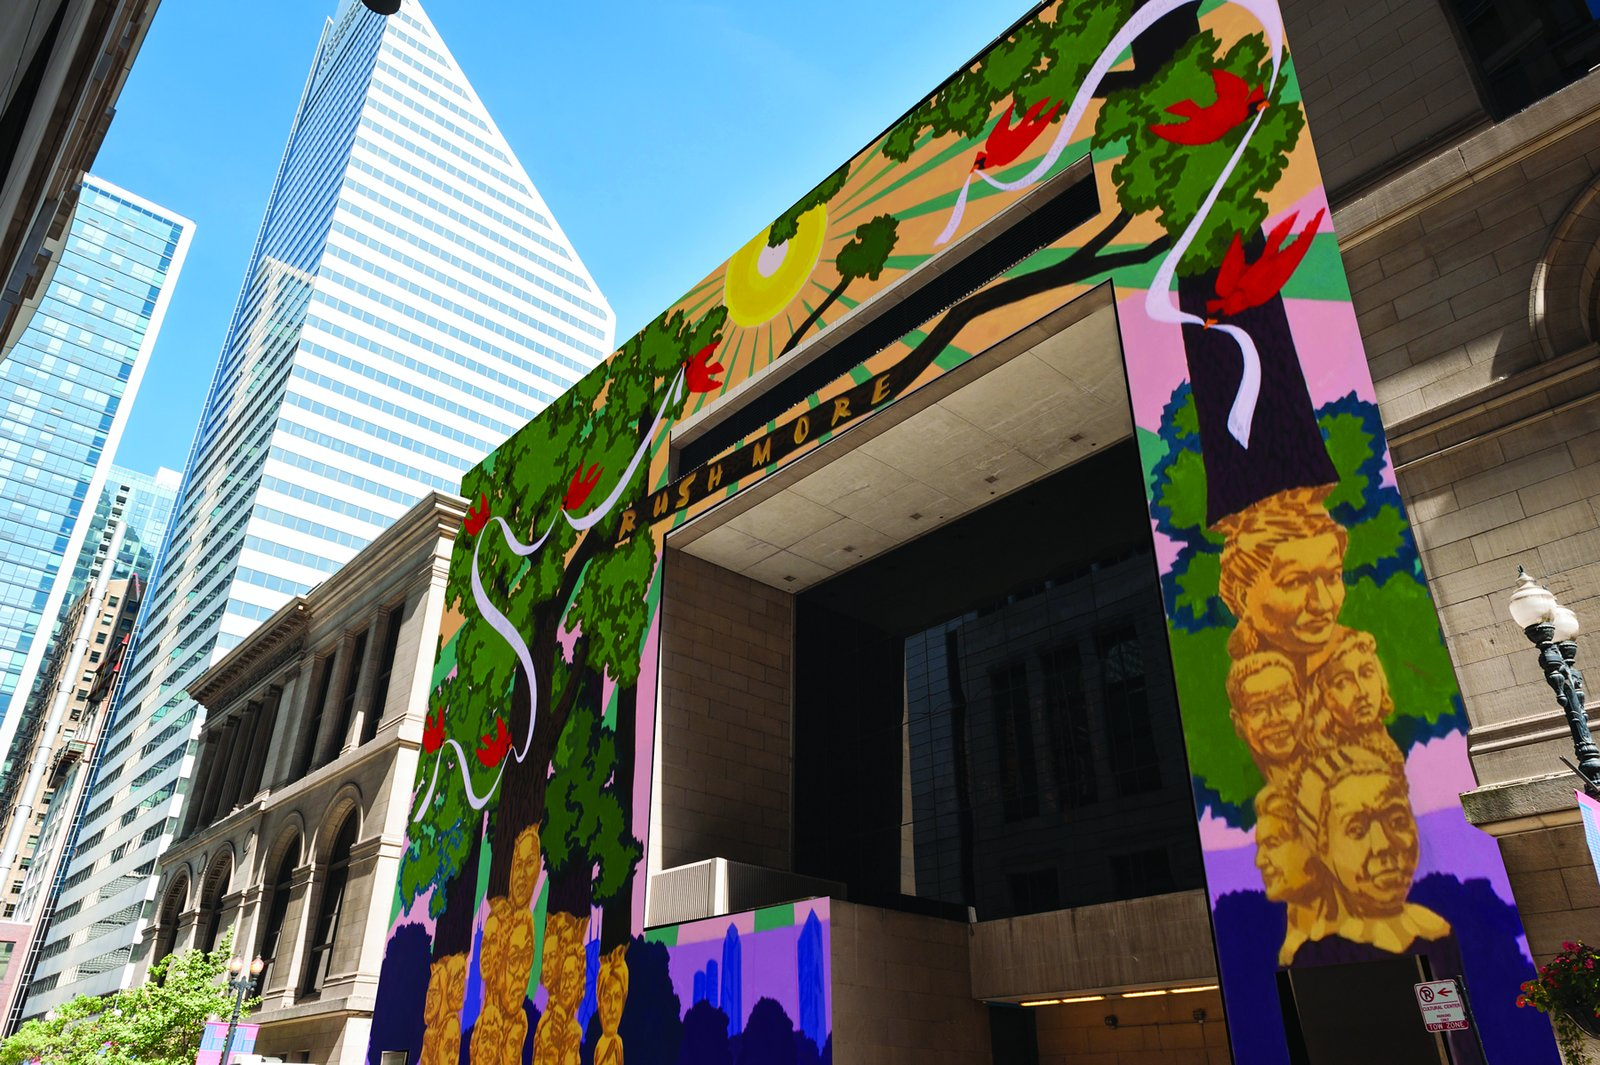 Kerry James Marshall mural  Photo 7 of 7 in Top Design Cities 2019: Chicago